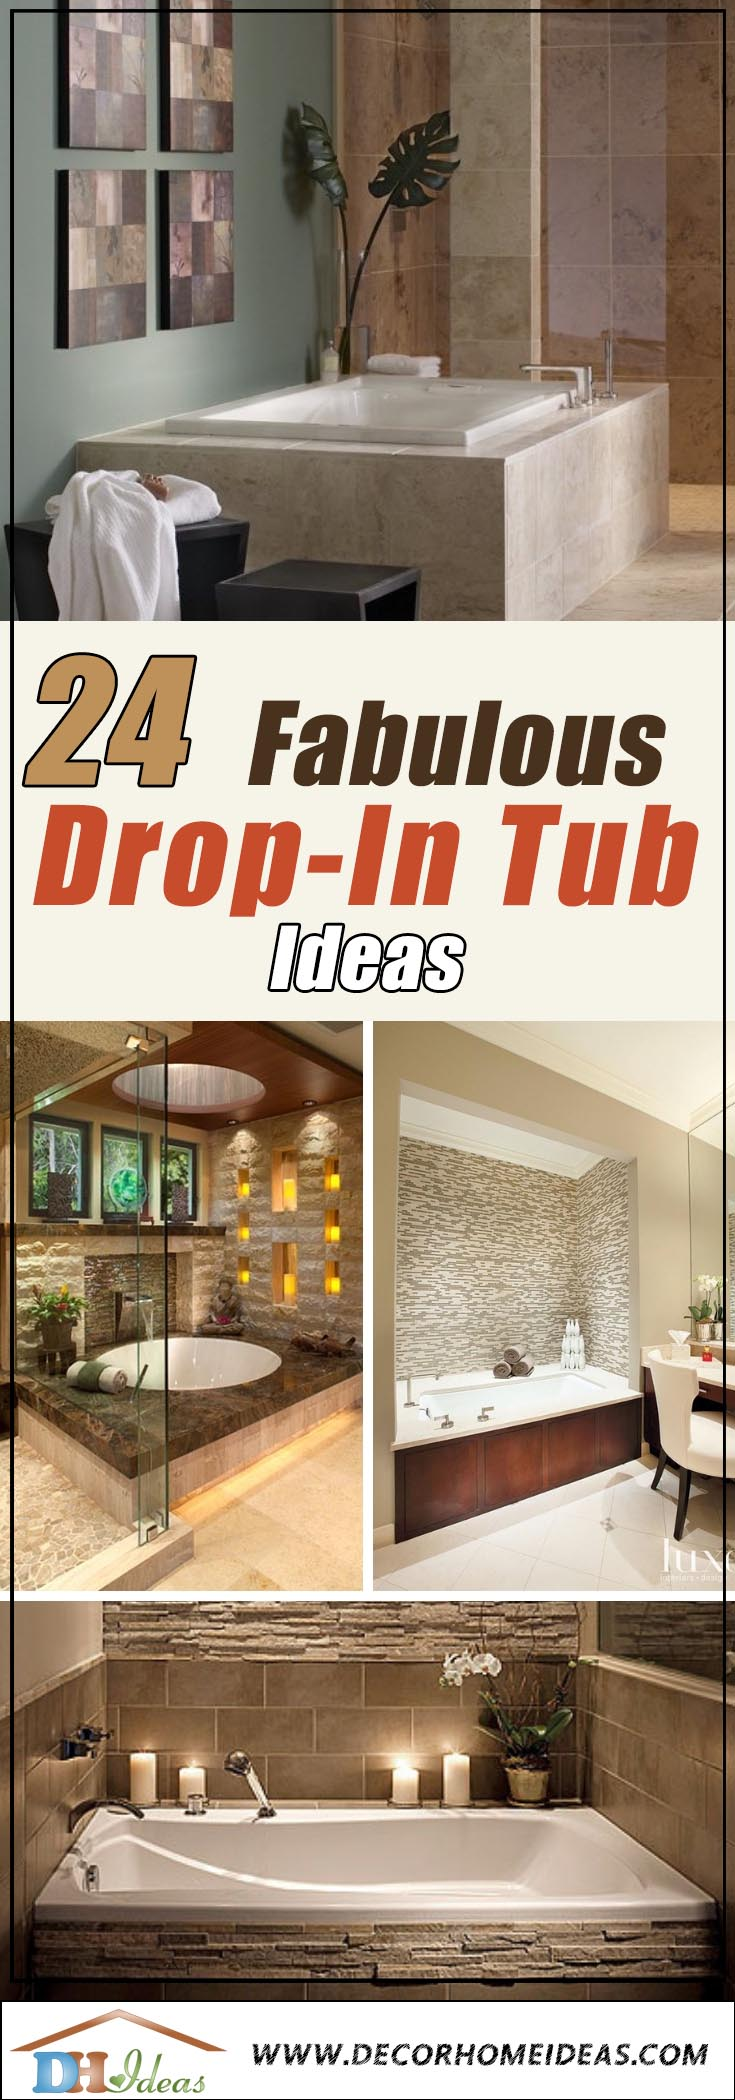 Drop-In Tub Ideas #dropintub #bathtub #tub #ideas #decorhomeideas